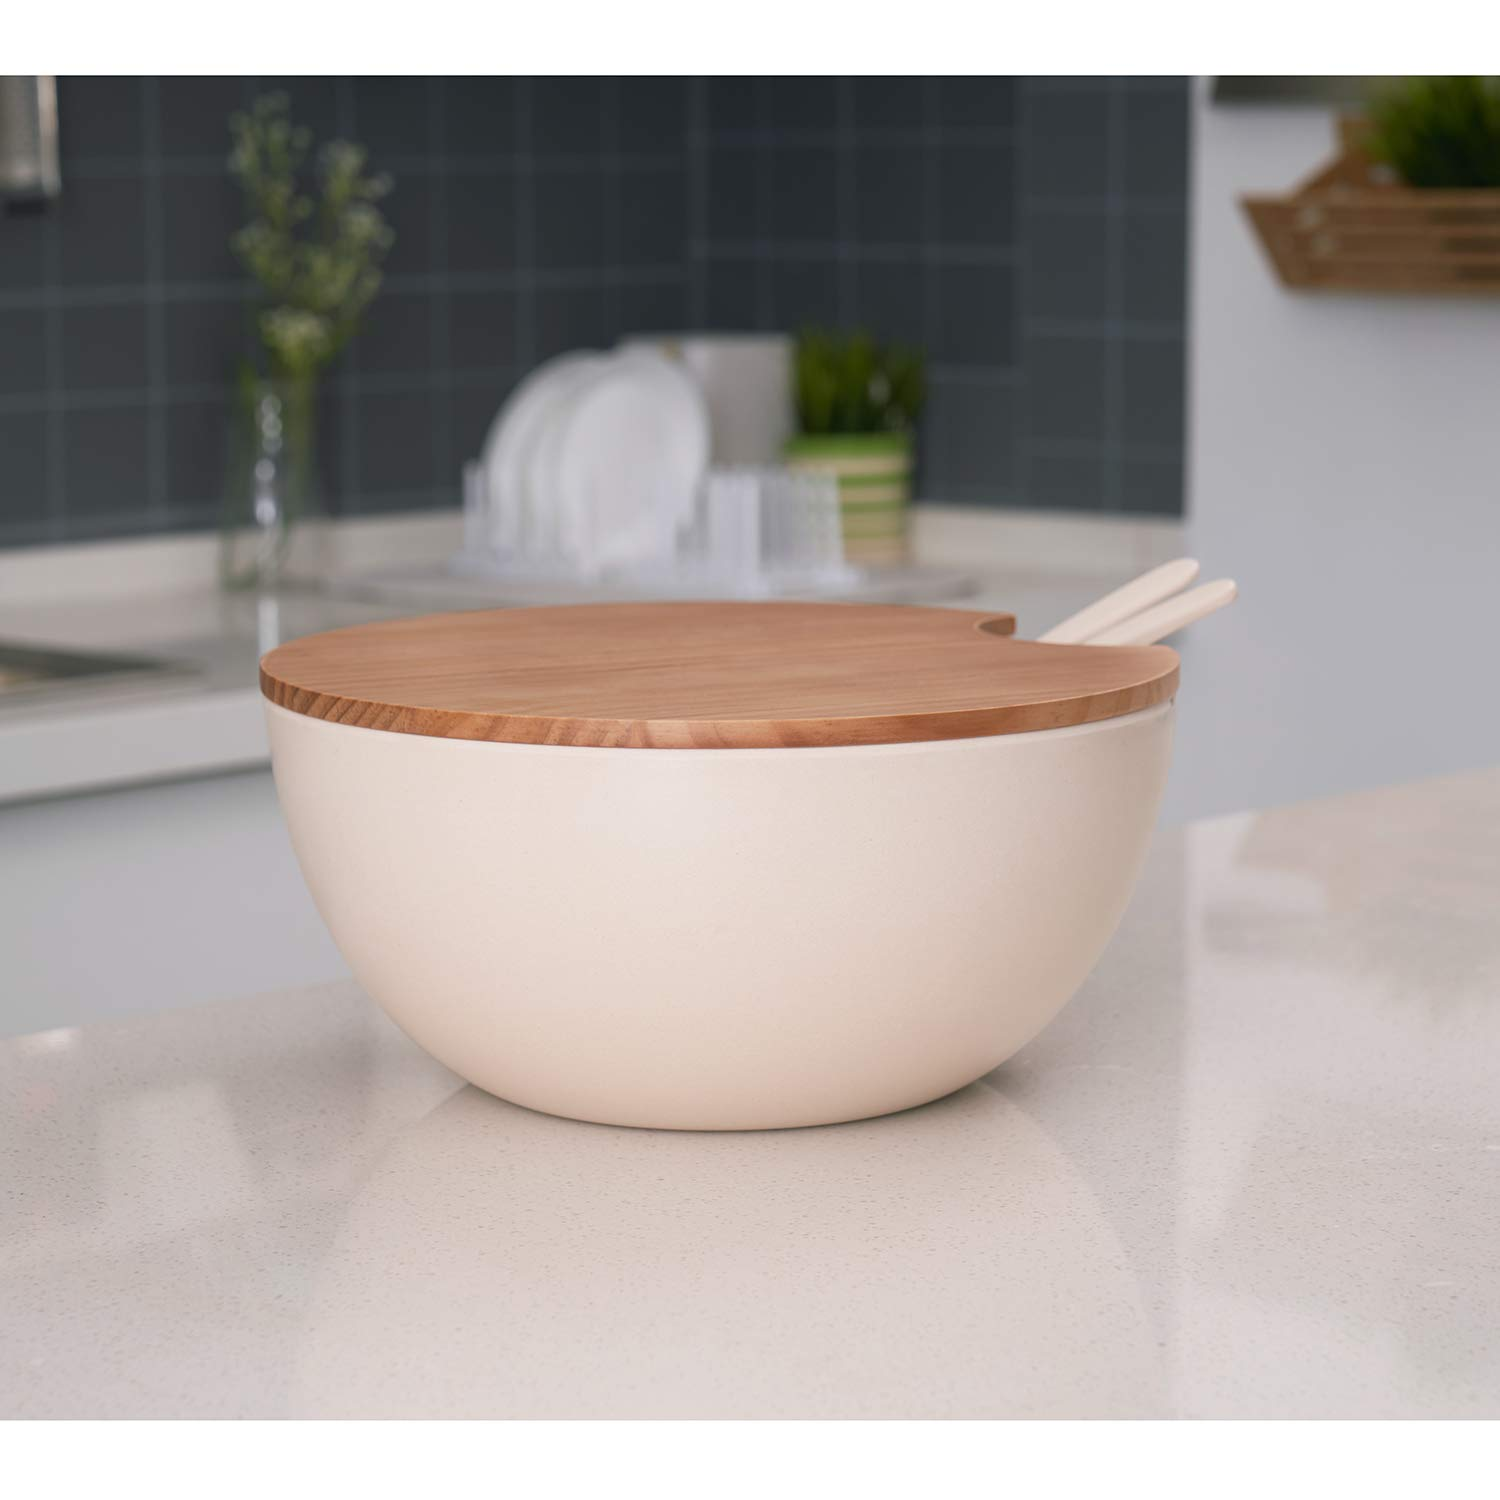 Bamboo Fiber Material Perfect for Salad Fruit Pasta Red 8PCS Large Salad Bowl Set(6 Quart)with Lid and Servers Extra Large Serving Bowl Set Mixing Bowl Set with Wooden Cutting Board